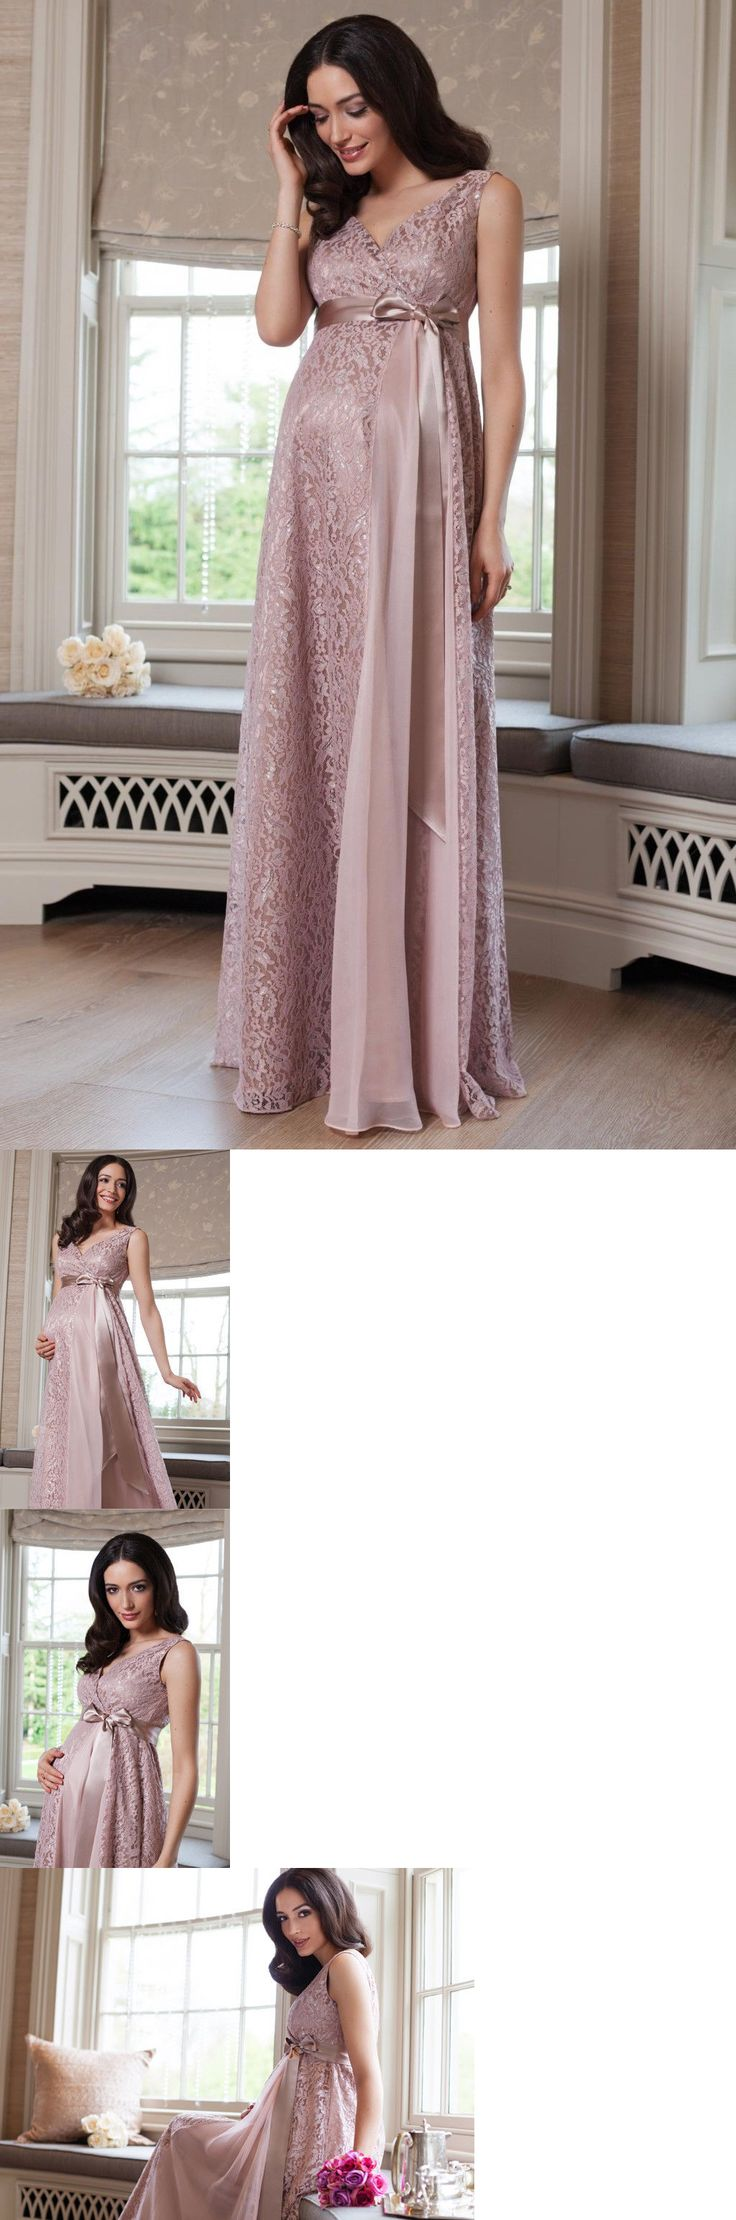 920 best dresses 11534 images on pinterest curve maternity dresses 11534 tiffany rose maternity dress gown blush thea size s m ombrellifo Image collections